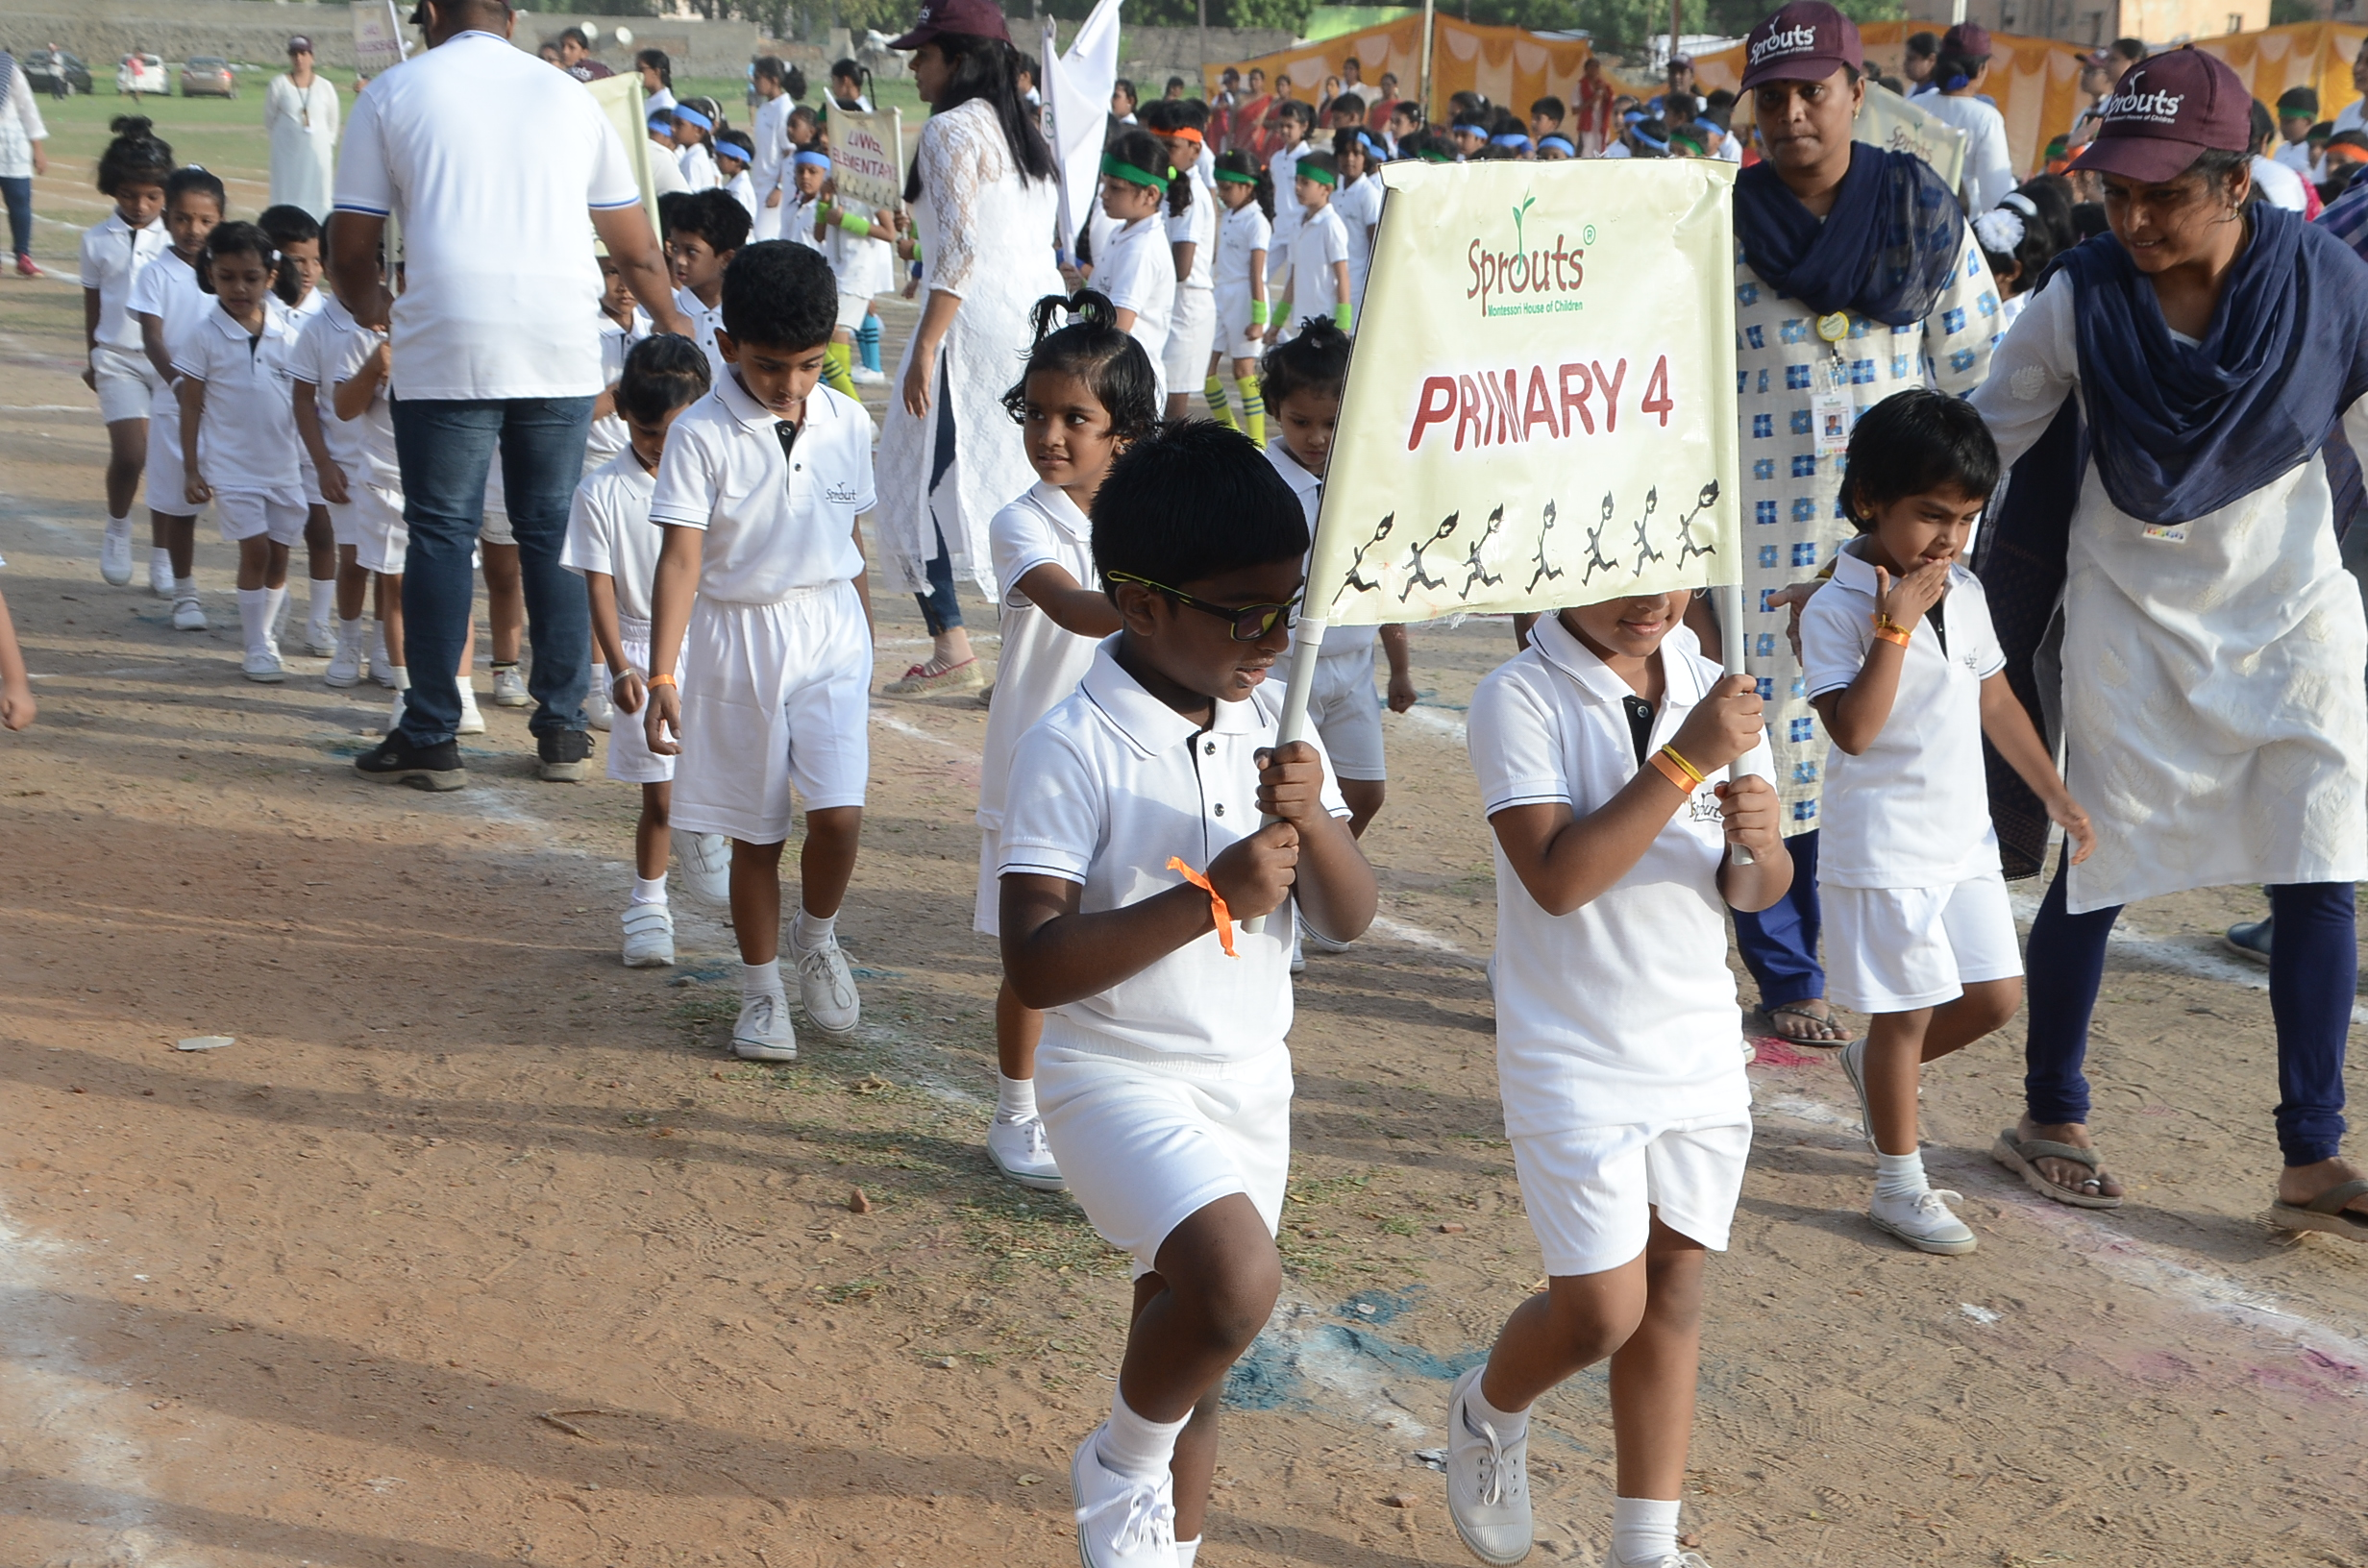 March Past by Primary 4